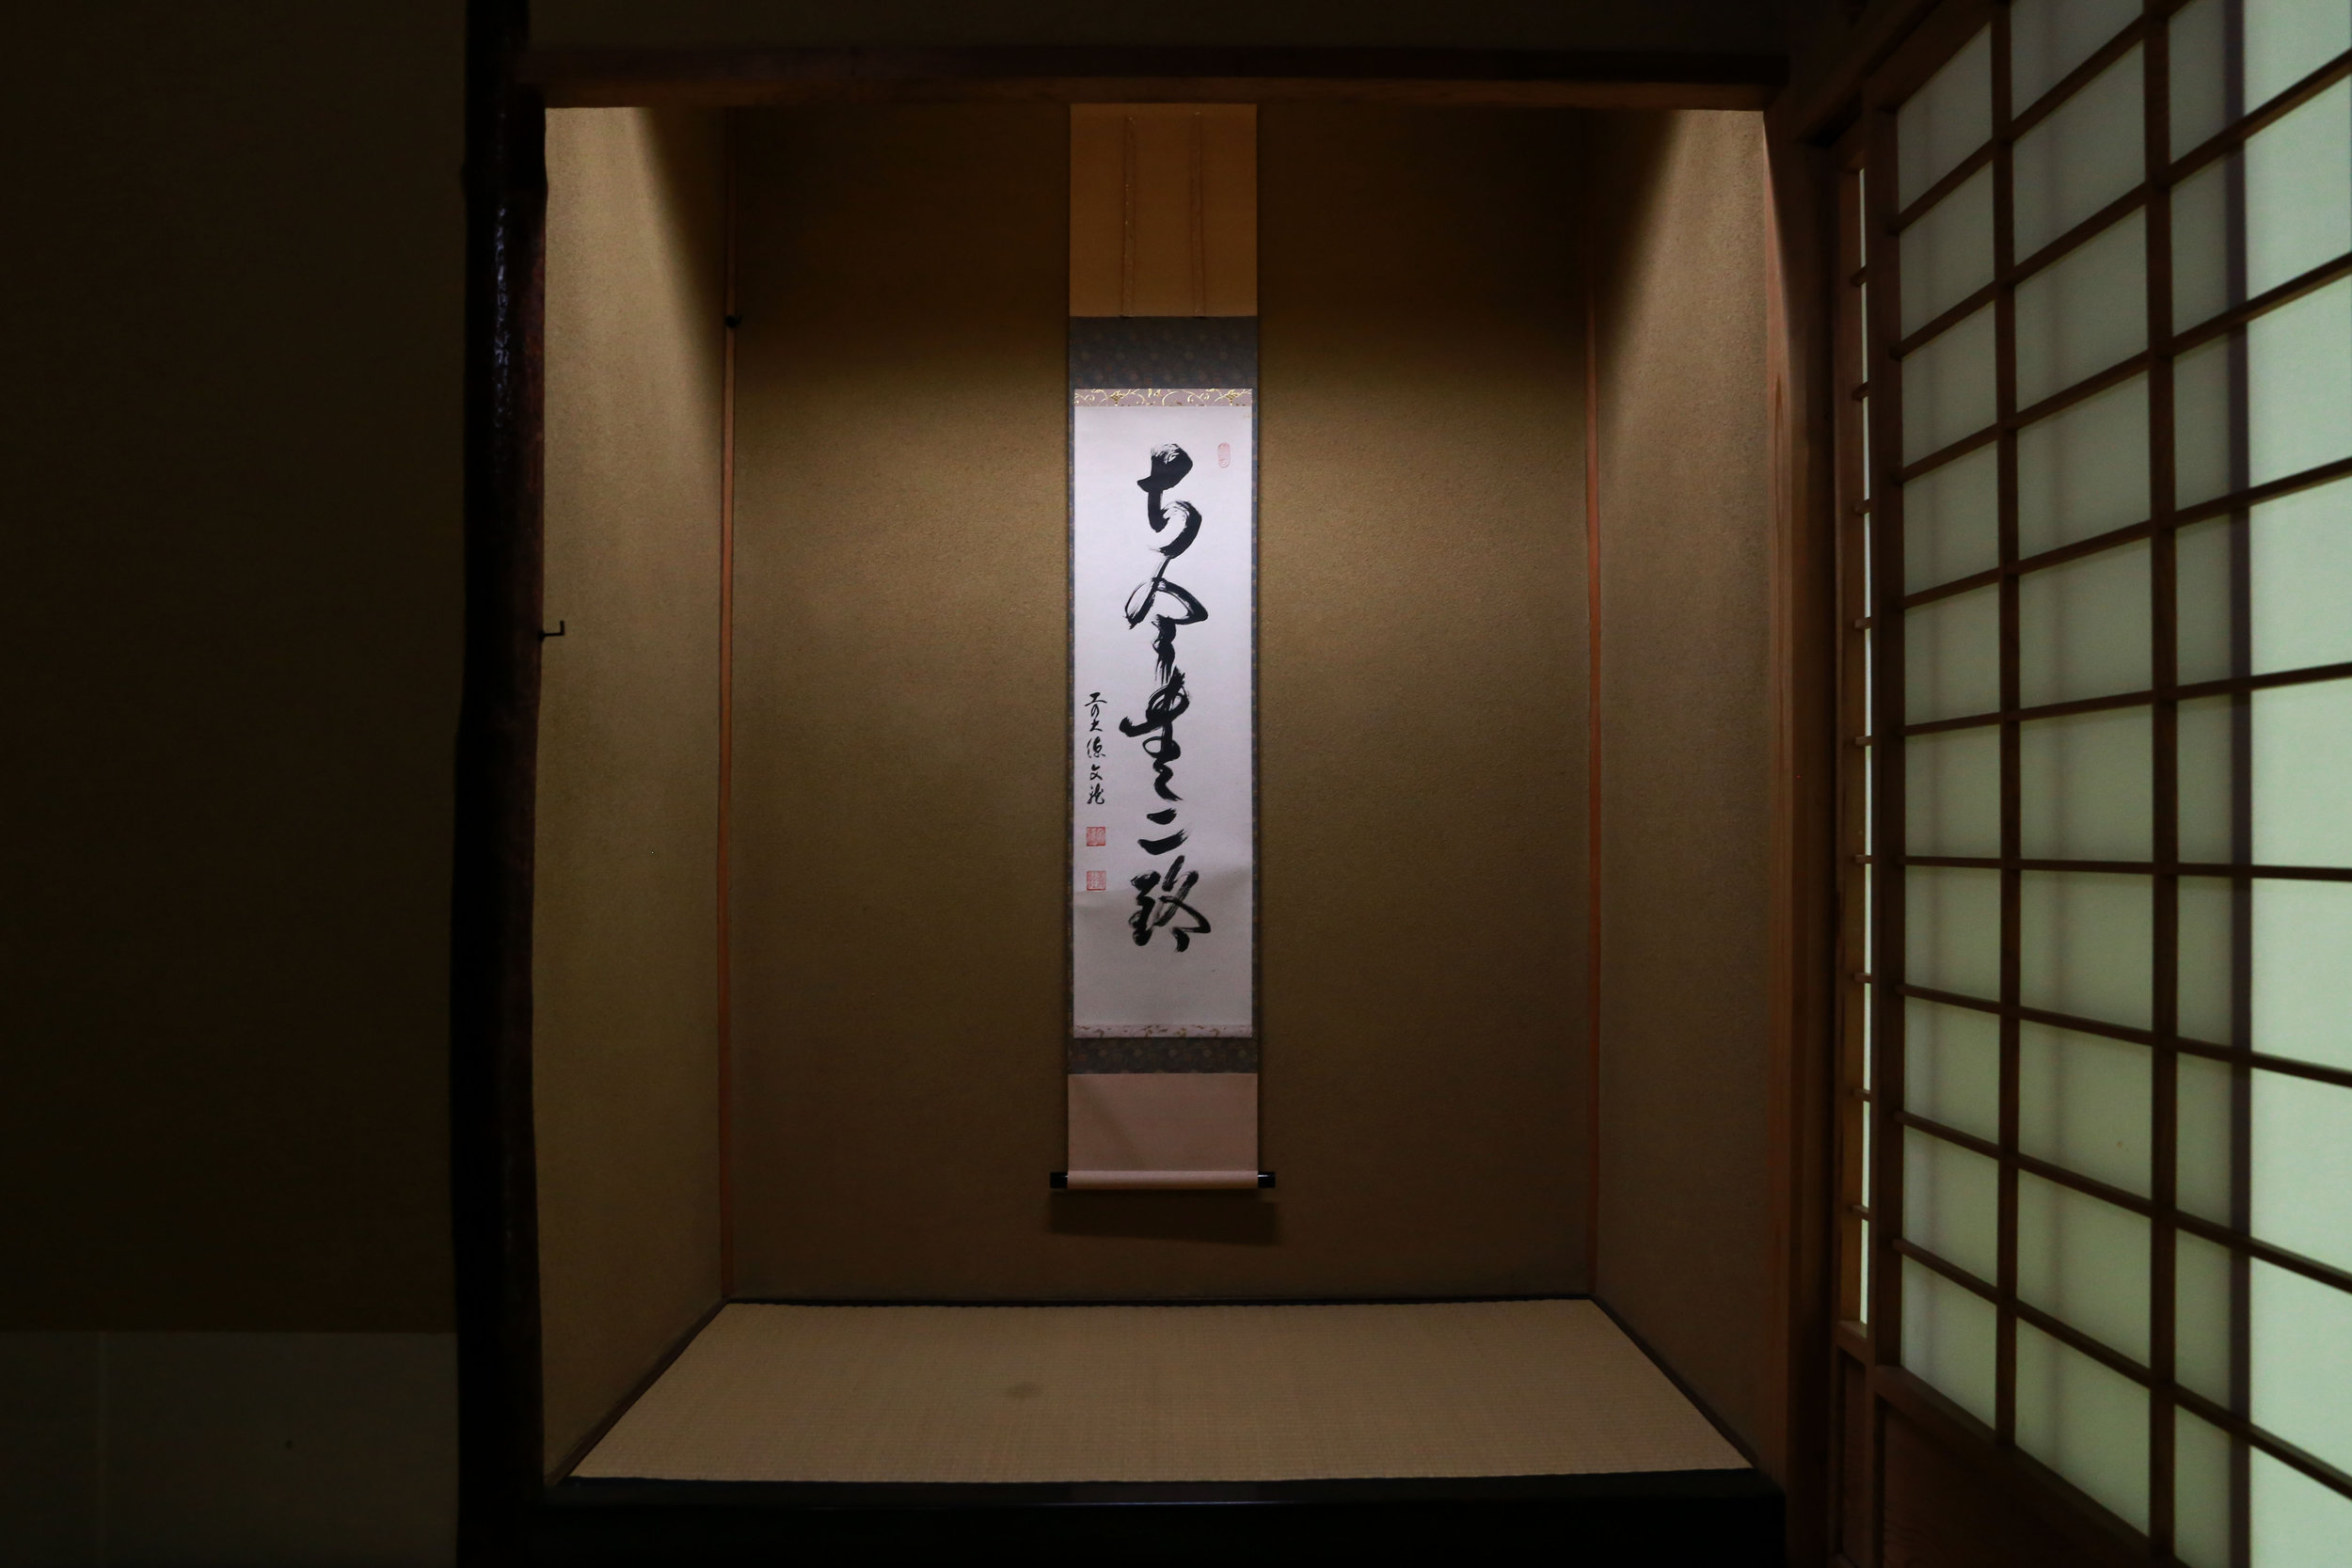 A tokonoma alcove and a displayed hanging scroll in the Rakusui-en's tea room in Fukuoka, Japan, June 22, 2018.